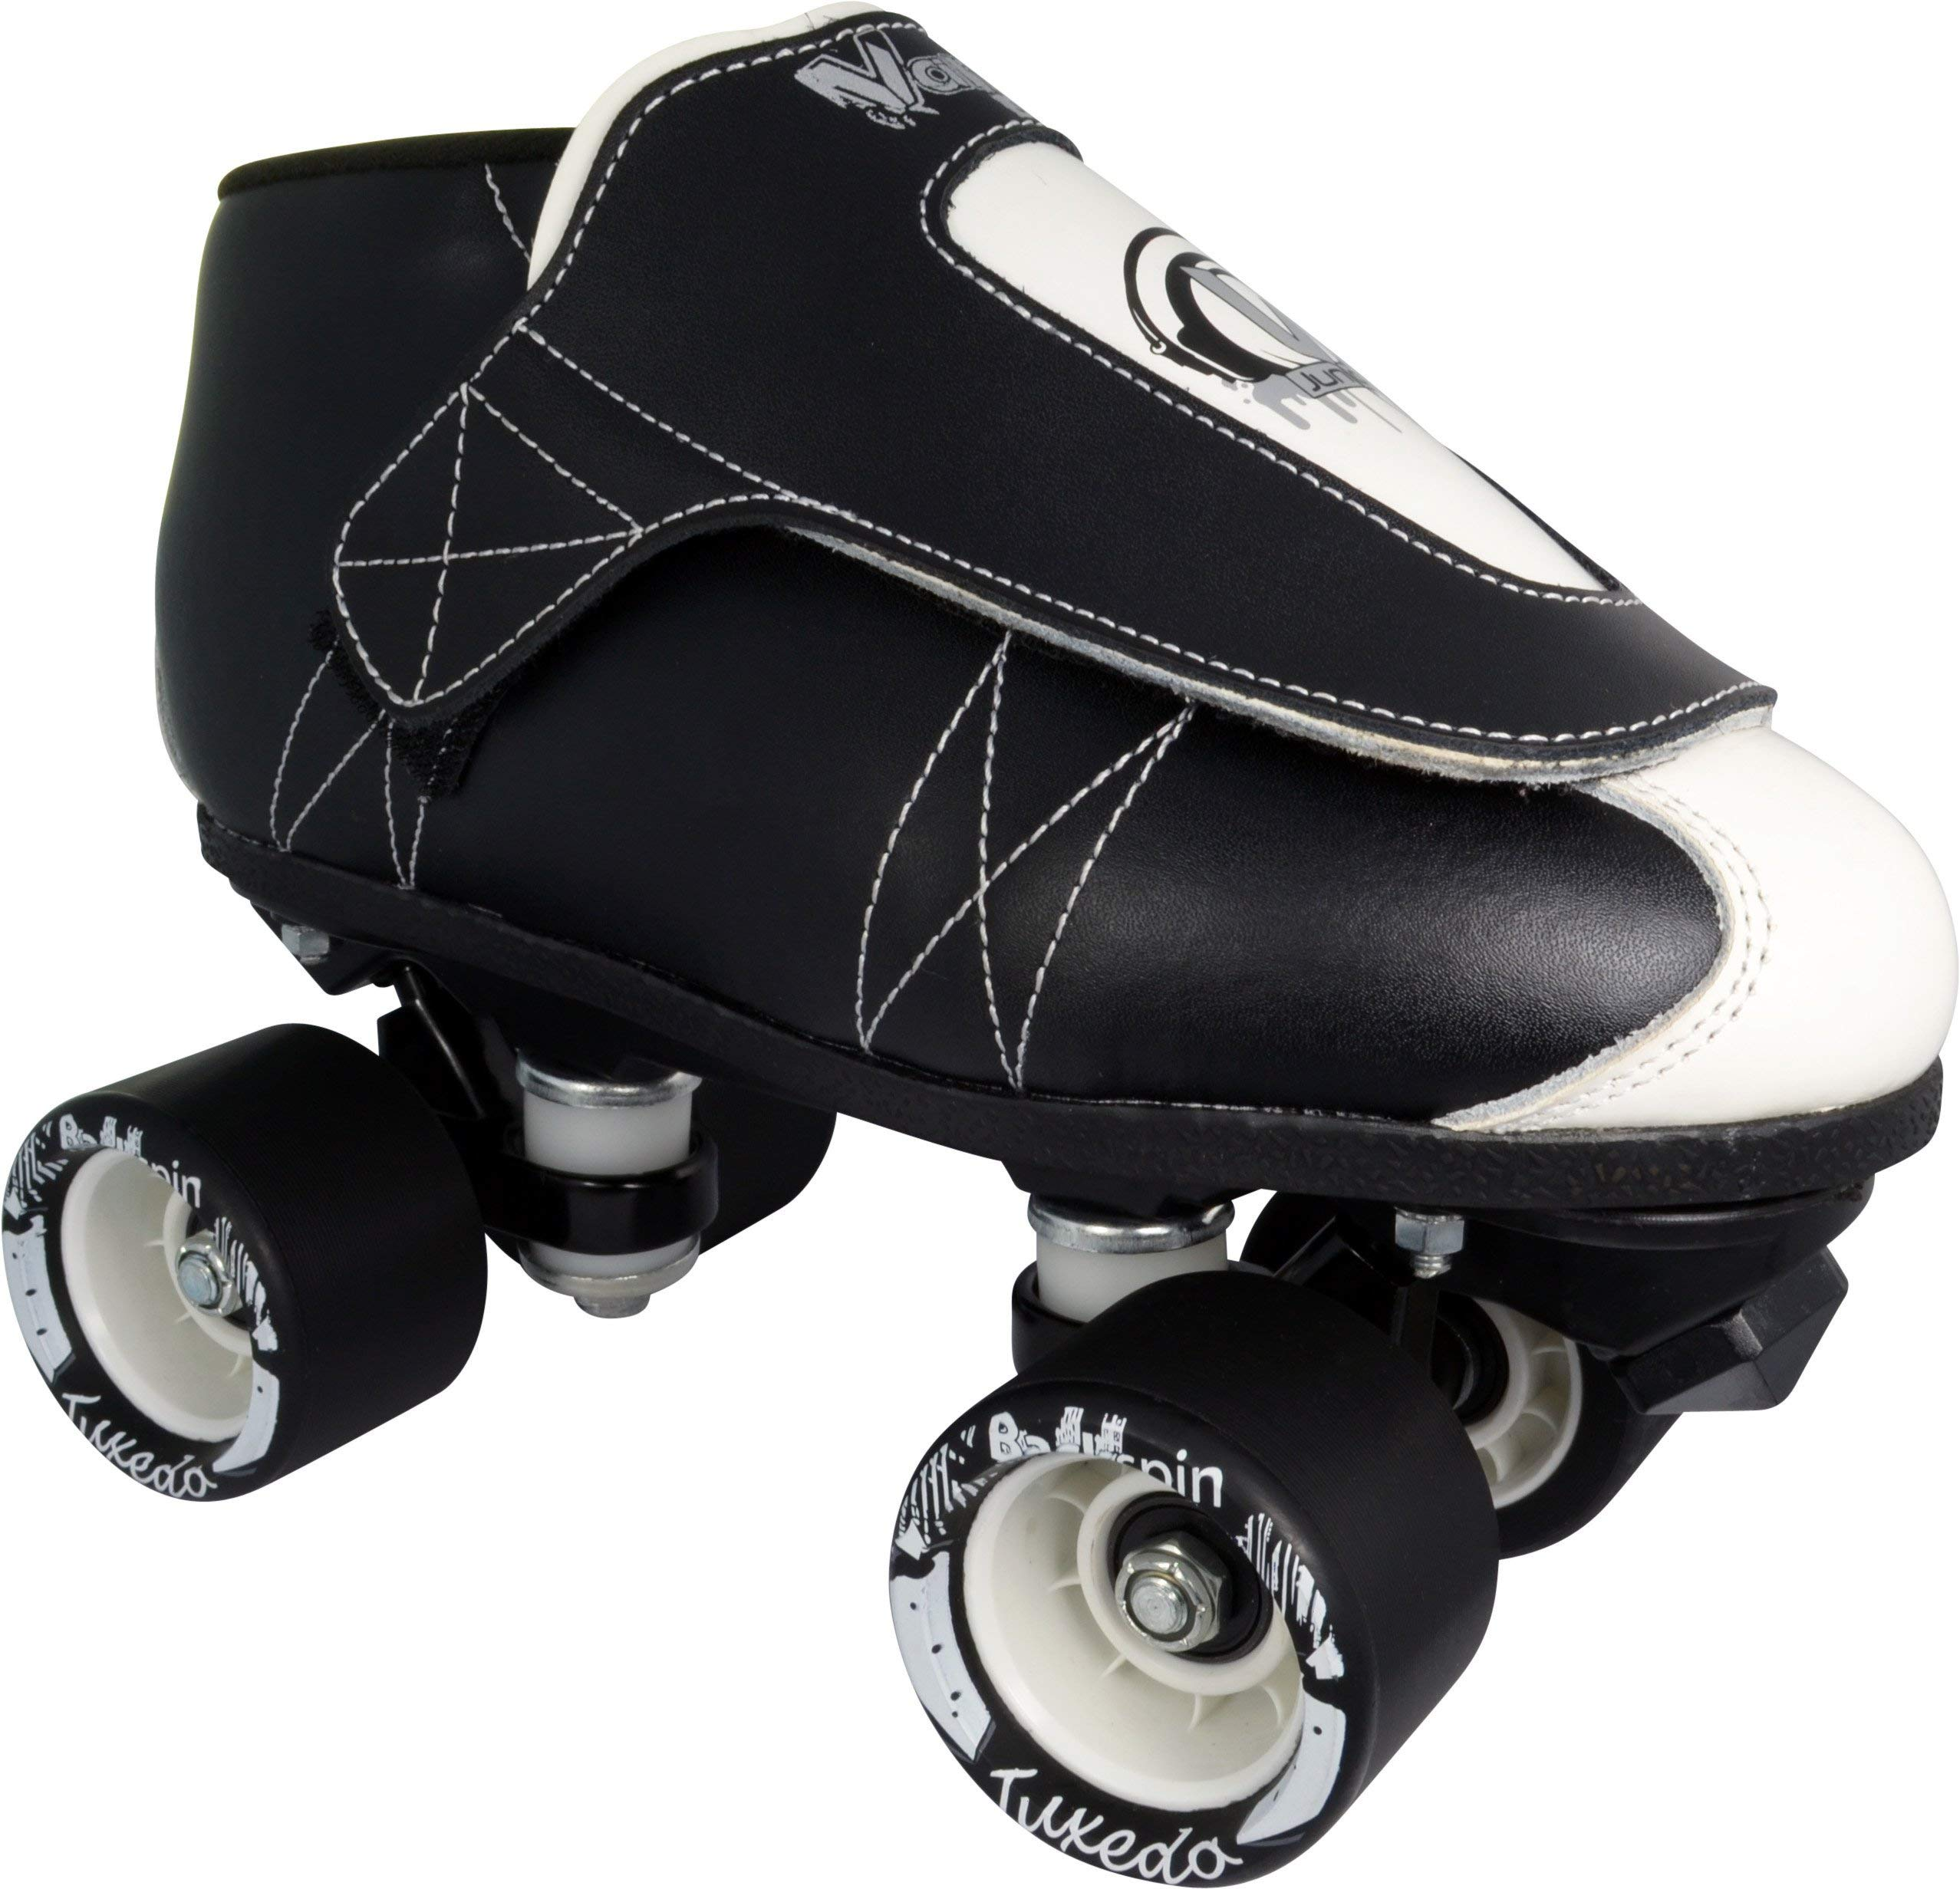 VNLA Tuxedo Jam Skate Mens & Womens Skates - Roller Skates for Women & Men - Adjustable Roller Skate/Rollerskates - Outdoor & Indoor Adult Skate - Kid/Kids Skates (Black/White)